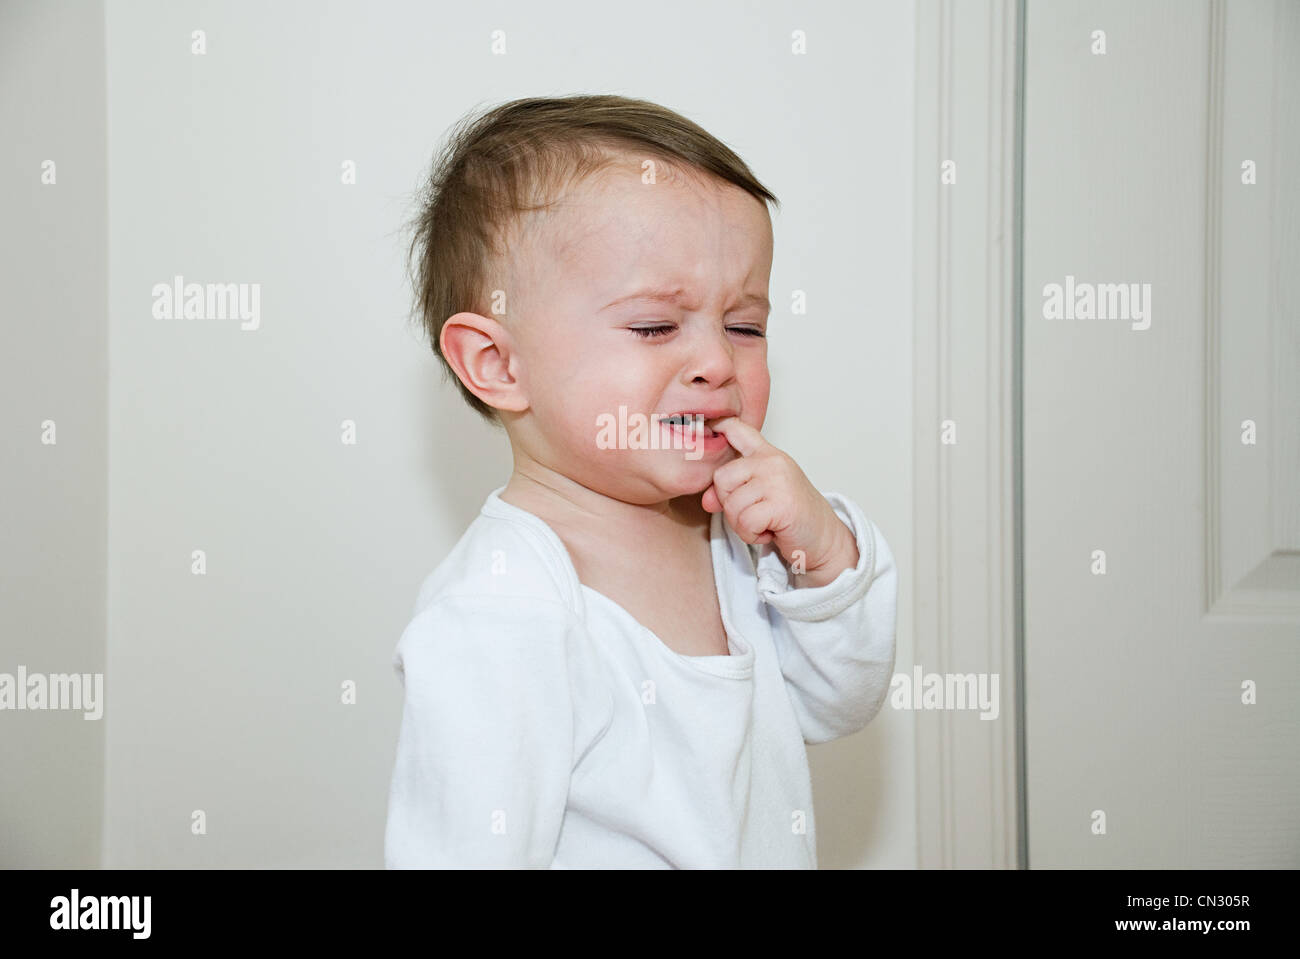 Baby boy crying - Stock Image